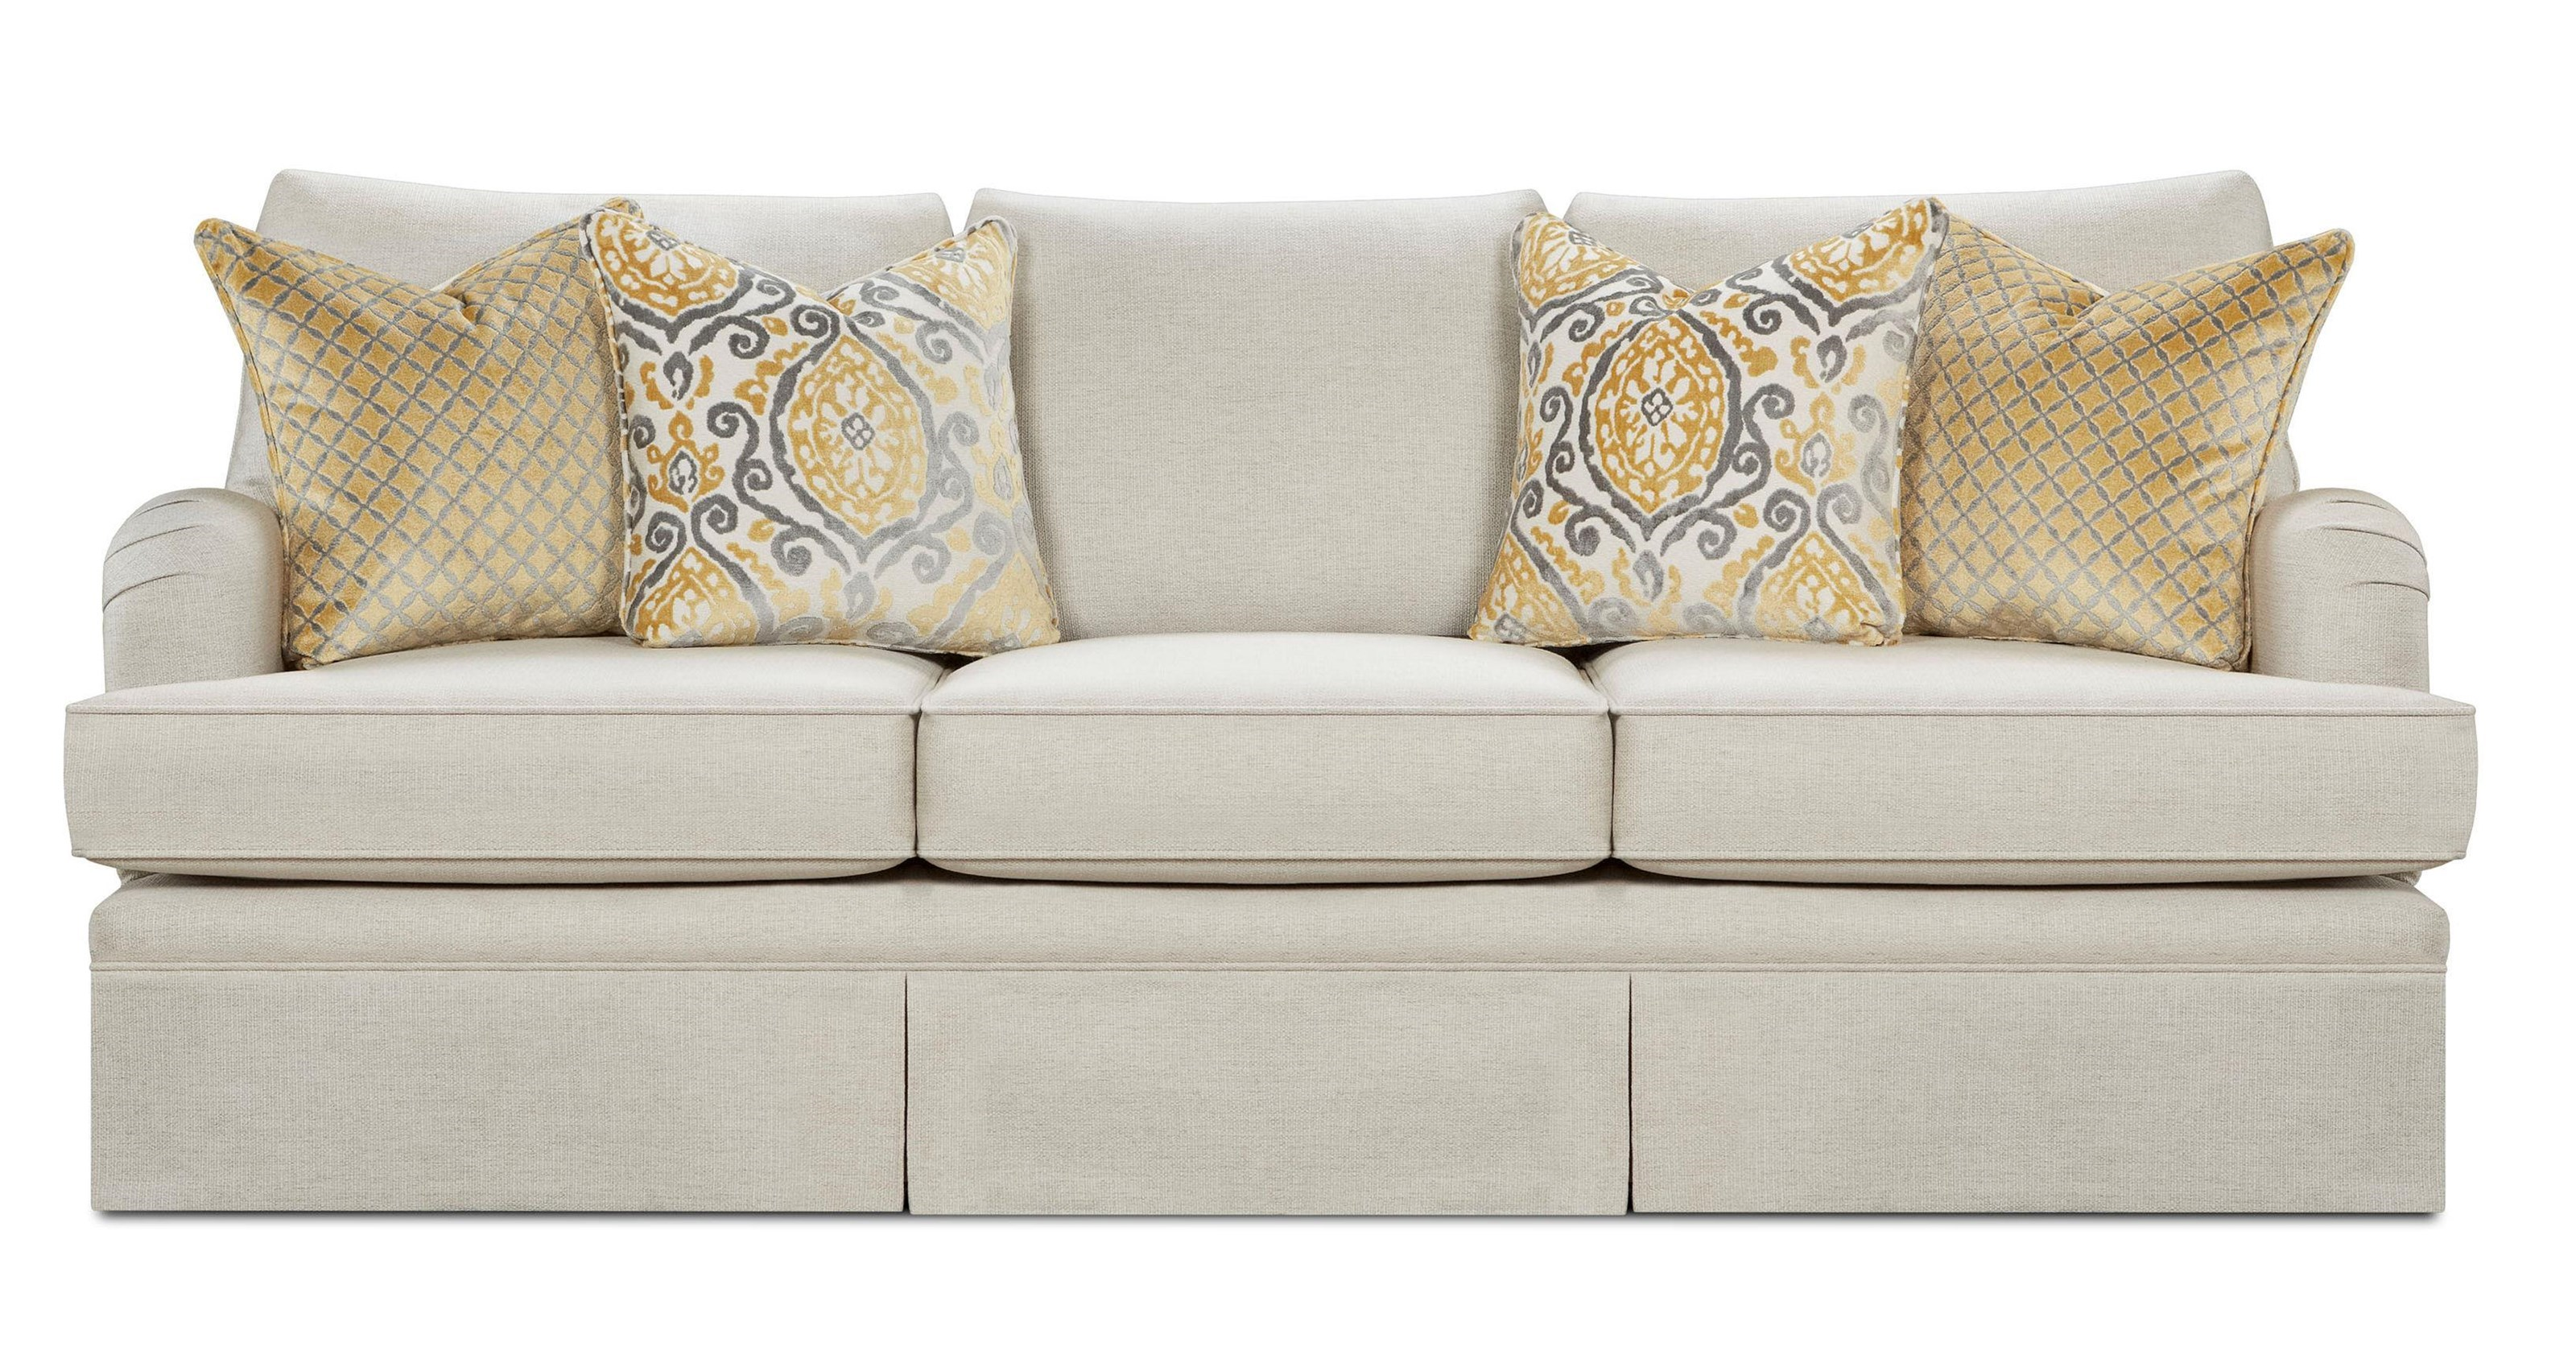 Superior Fusion Furniture 6000 Parker Linen Traditional Sofa With English Arms And  Skirt Base